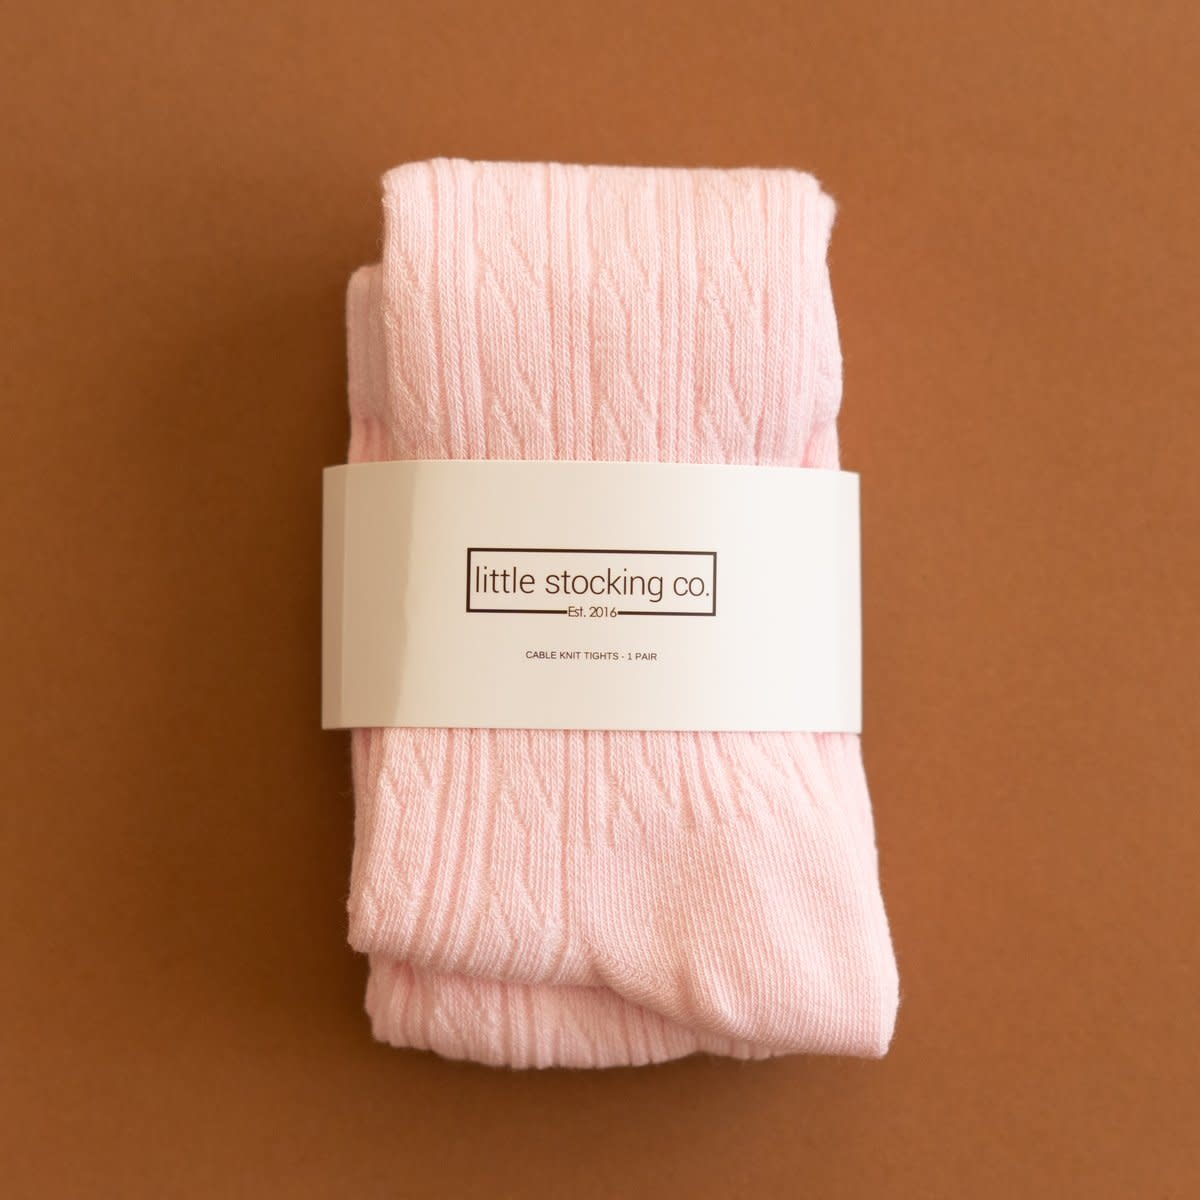 Little Stocking Co. Cable Knit Tights- Light Pink